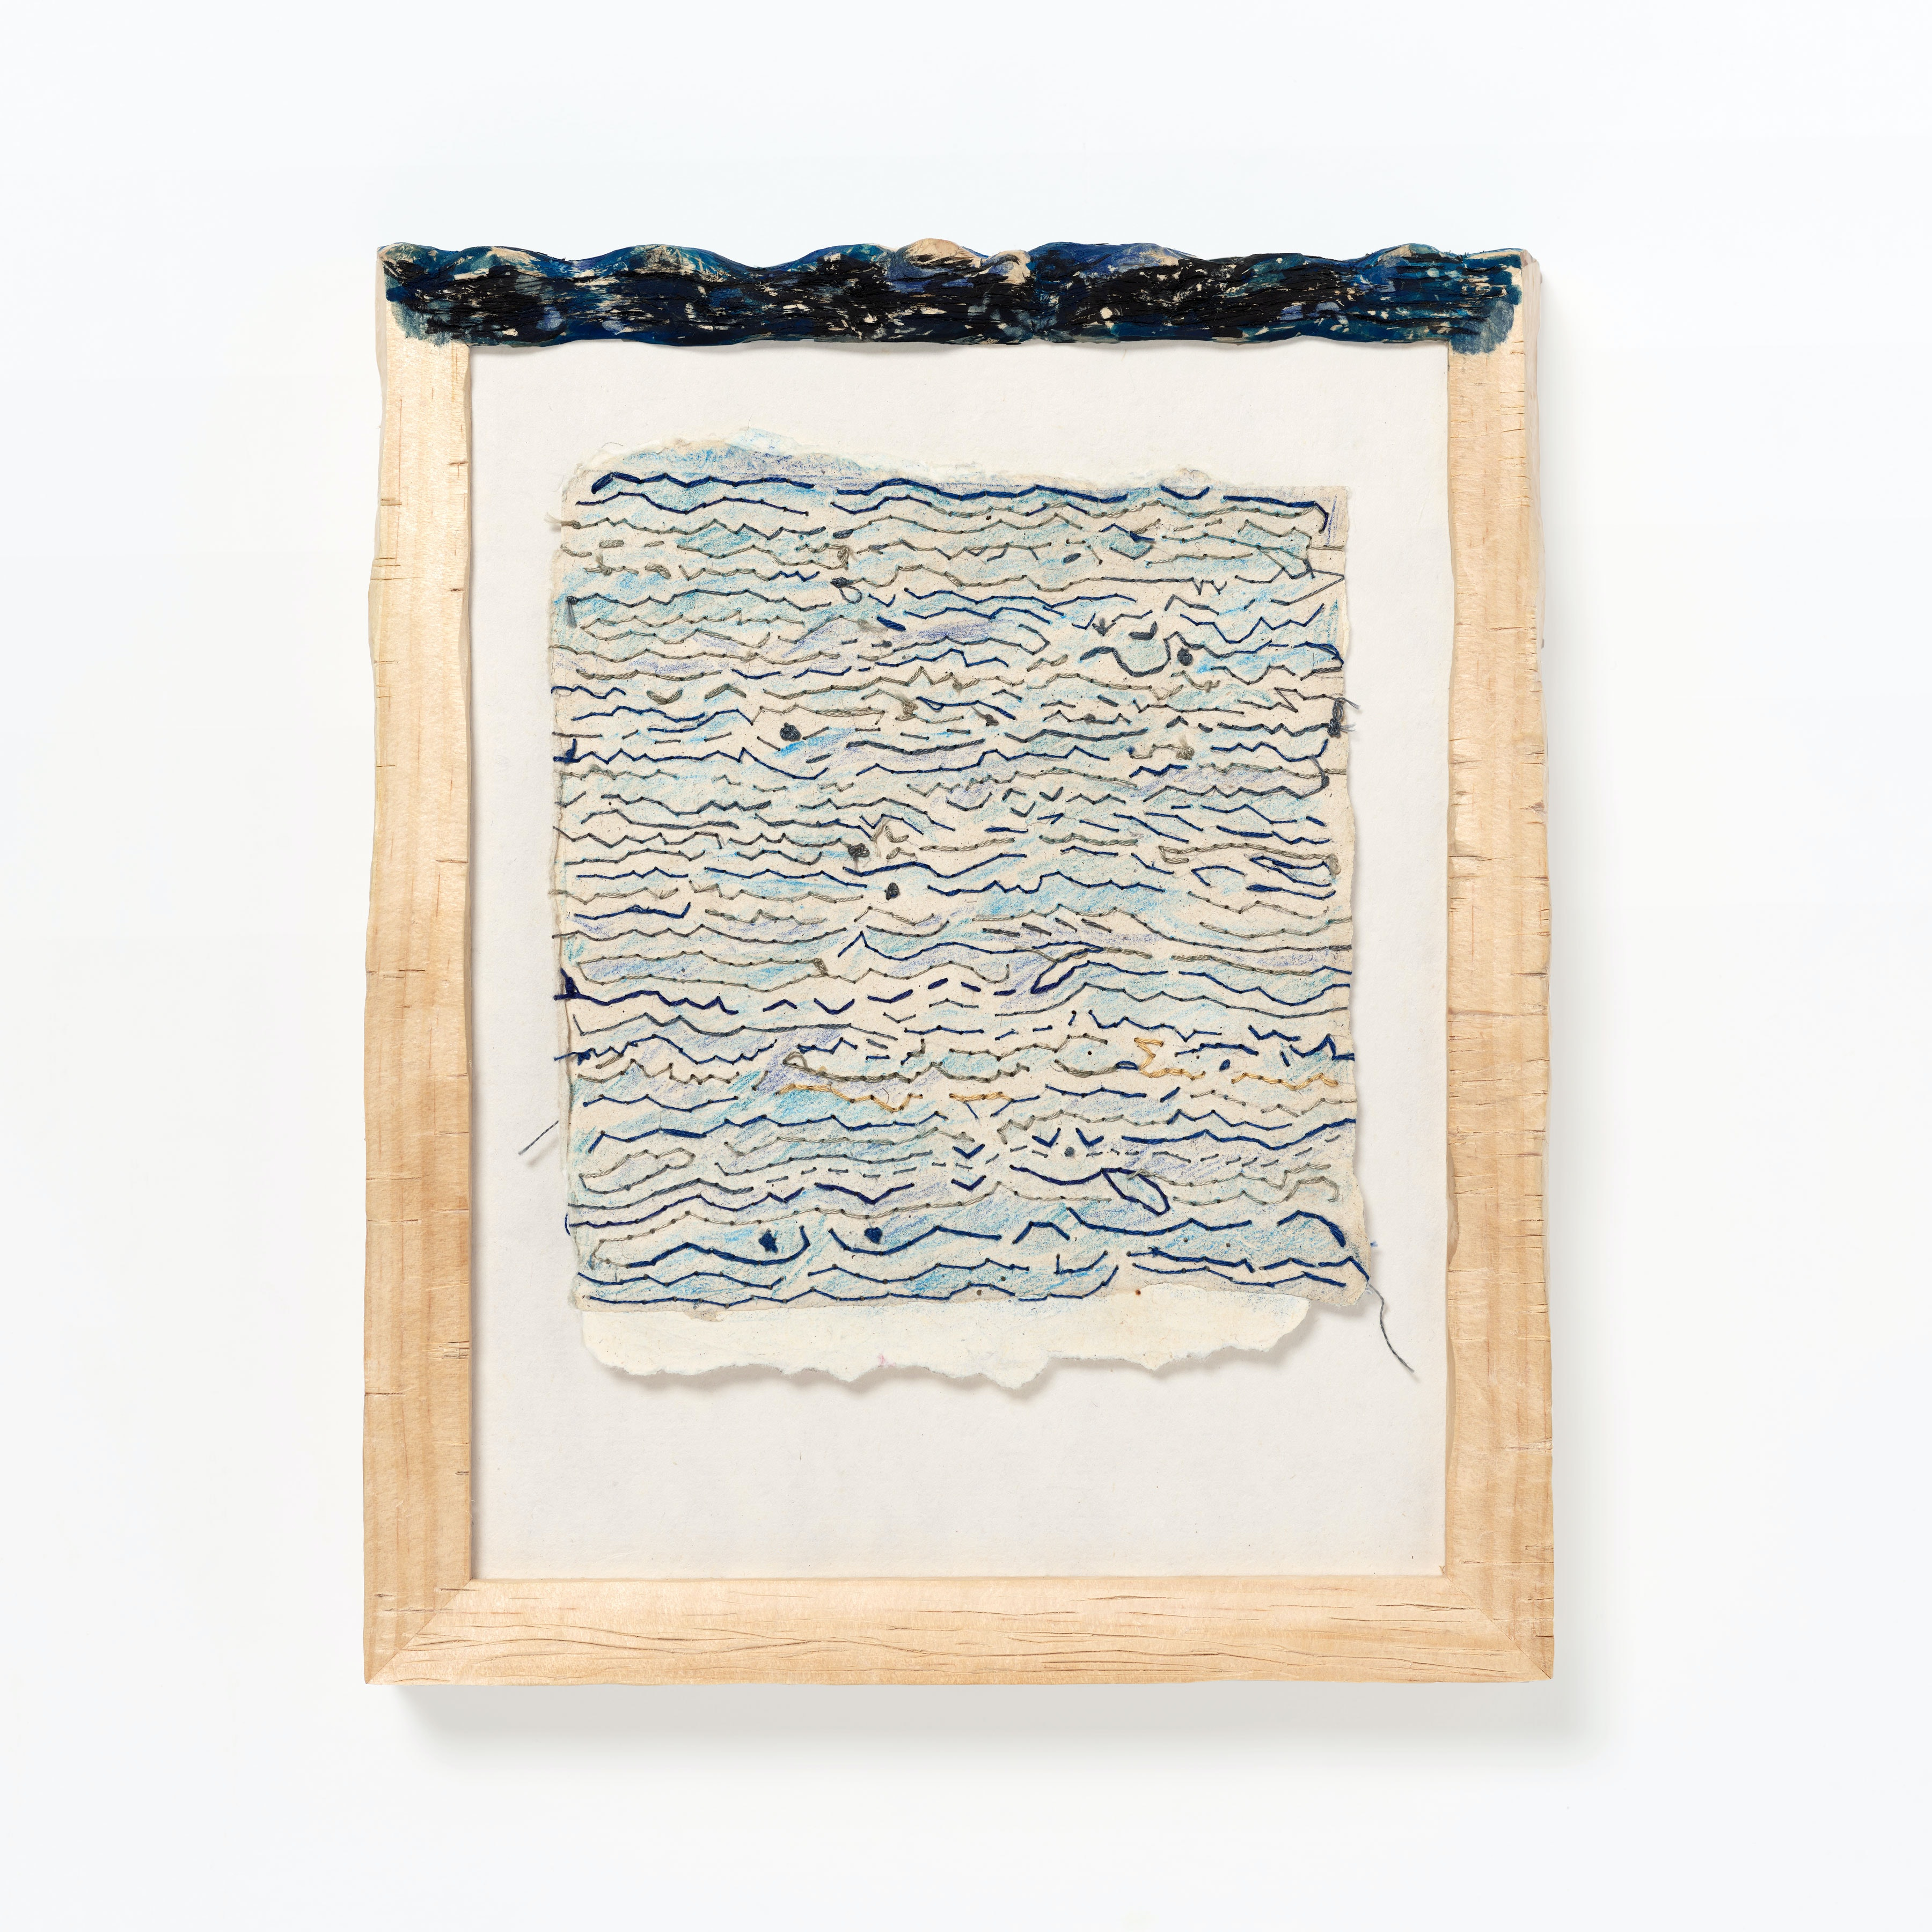 A framed artwork made of cotton thread, colored pencil on paper, pine, and gouache.